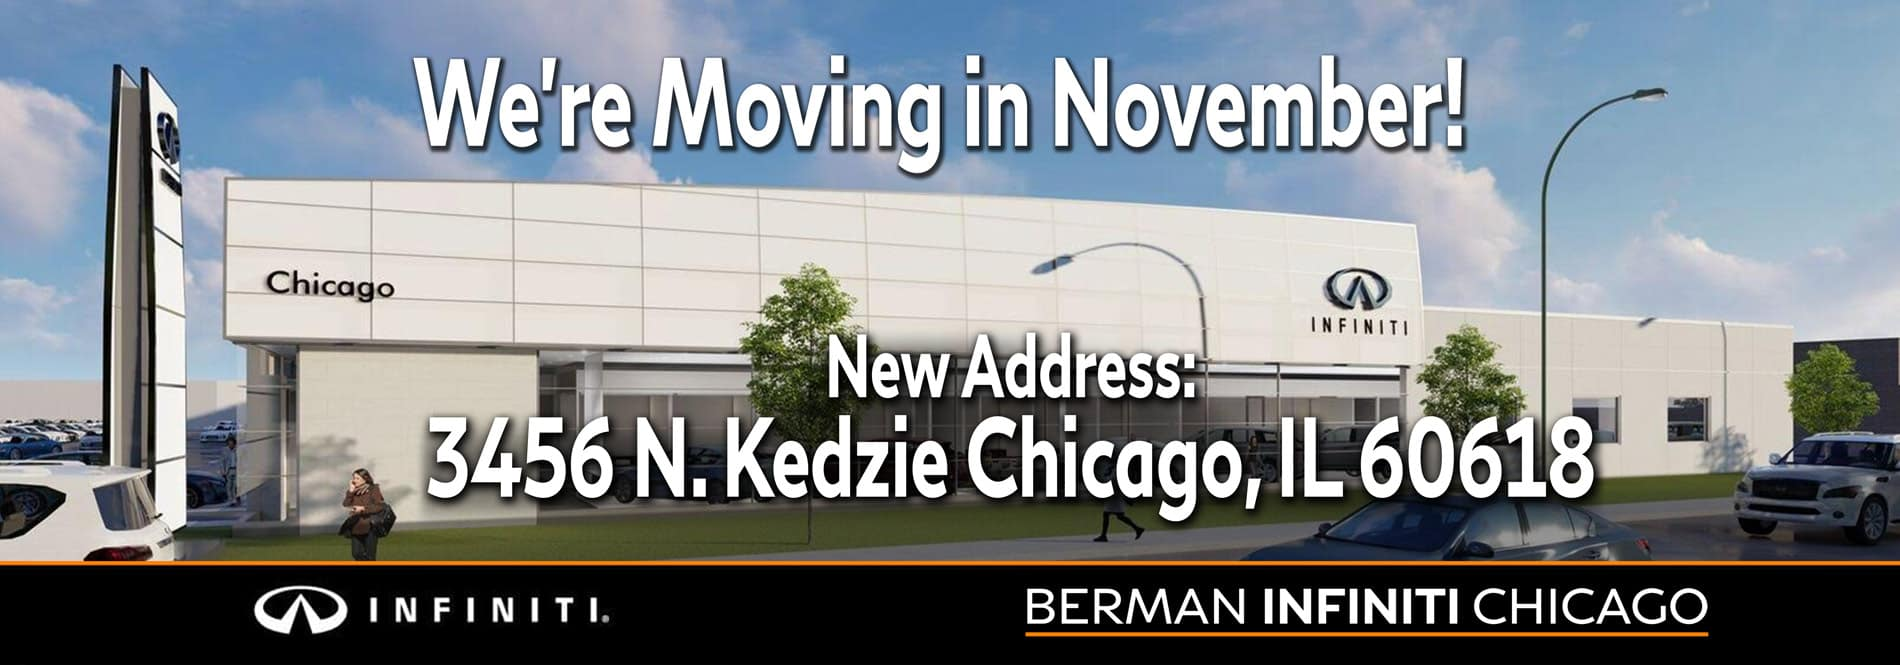 We're Moving! Our new location will be 3456 N. Kedzie Ave